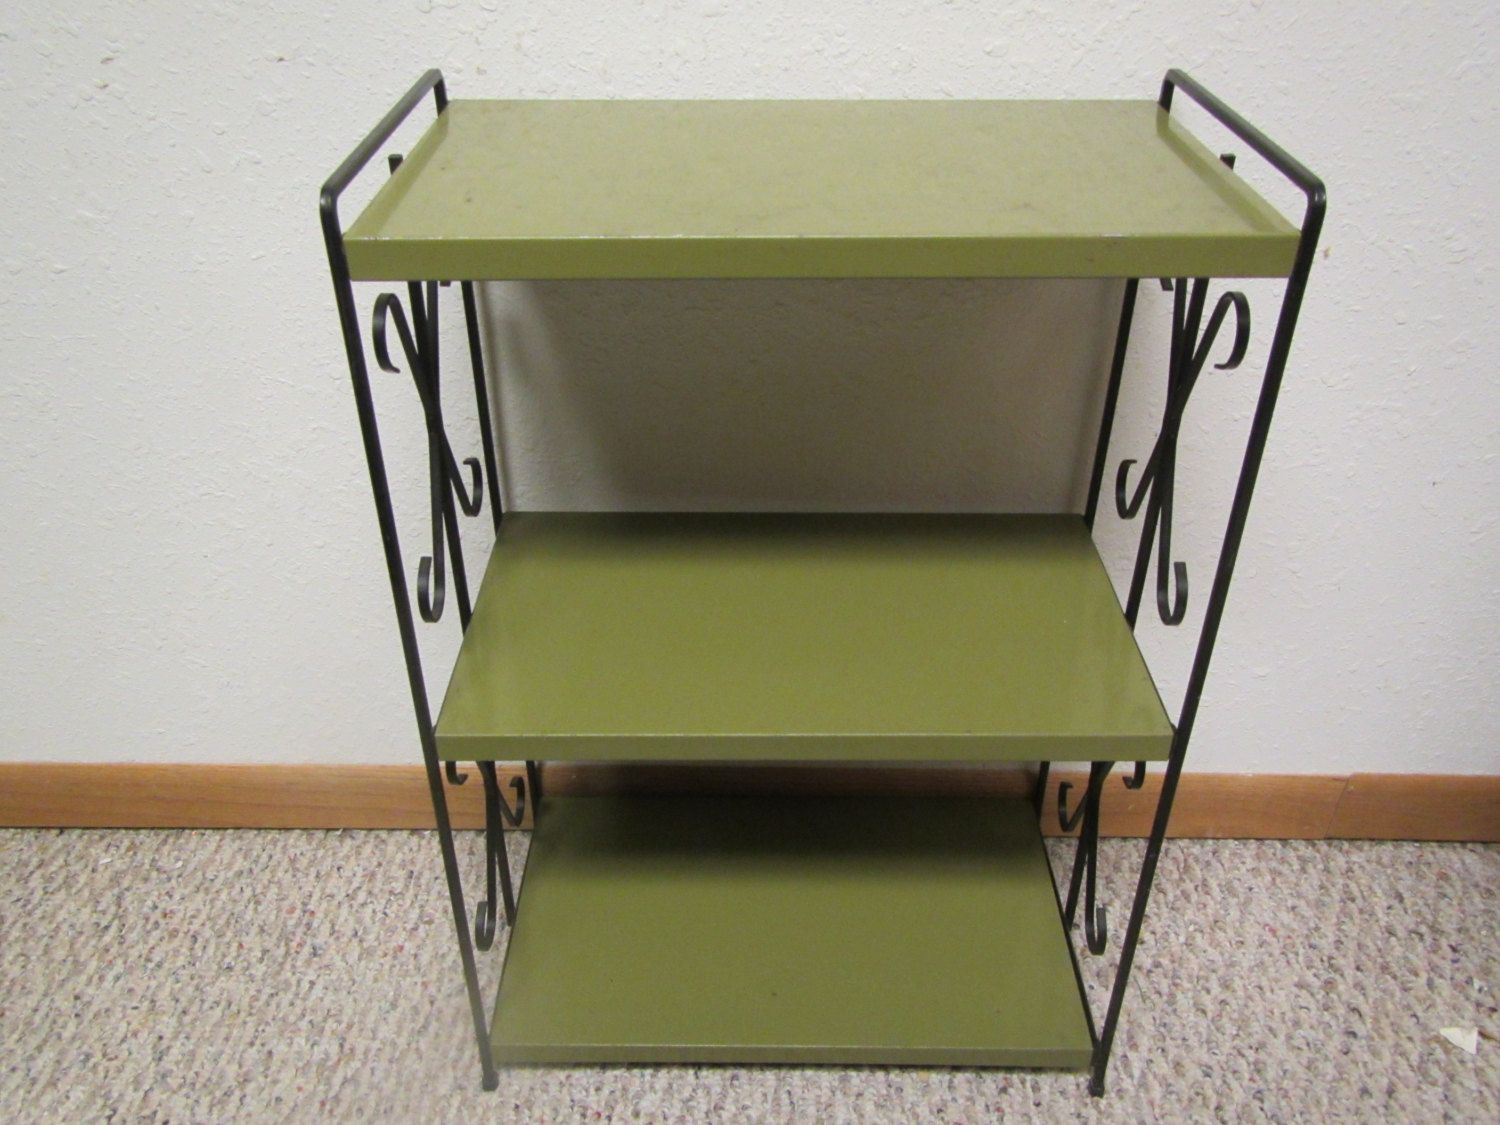 1950s Green Metal Stand With 3 Shelves With Black Decorative End Panels,  Book Shelf , End Table, Light Stand, Midcentury